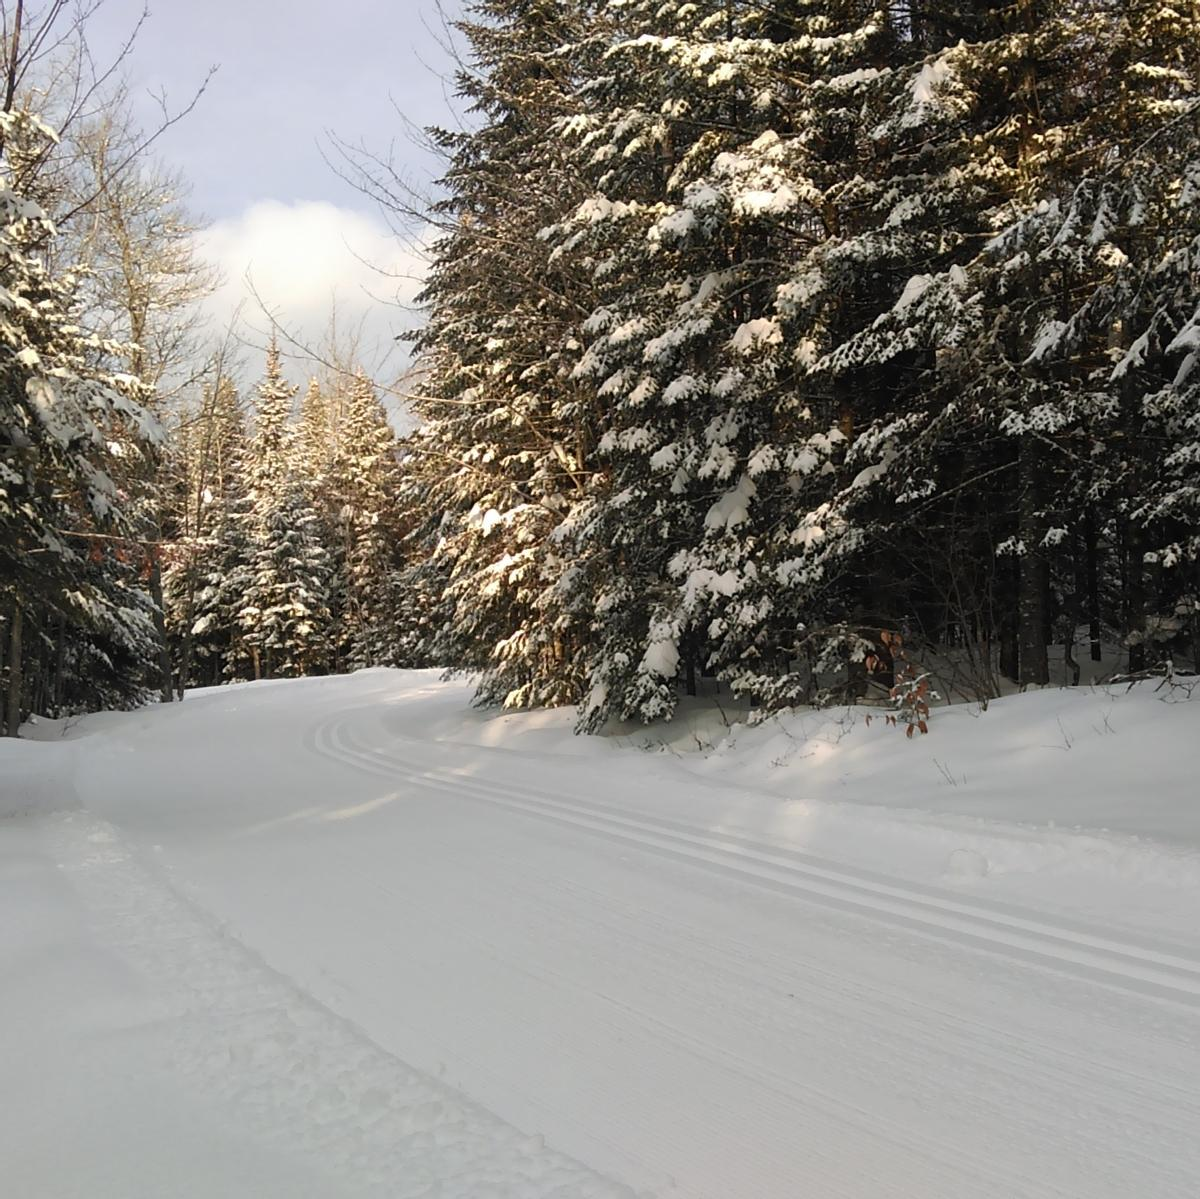 A wide ski trail with a section for skating and a groomed track.